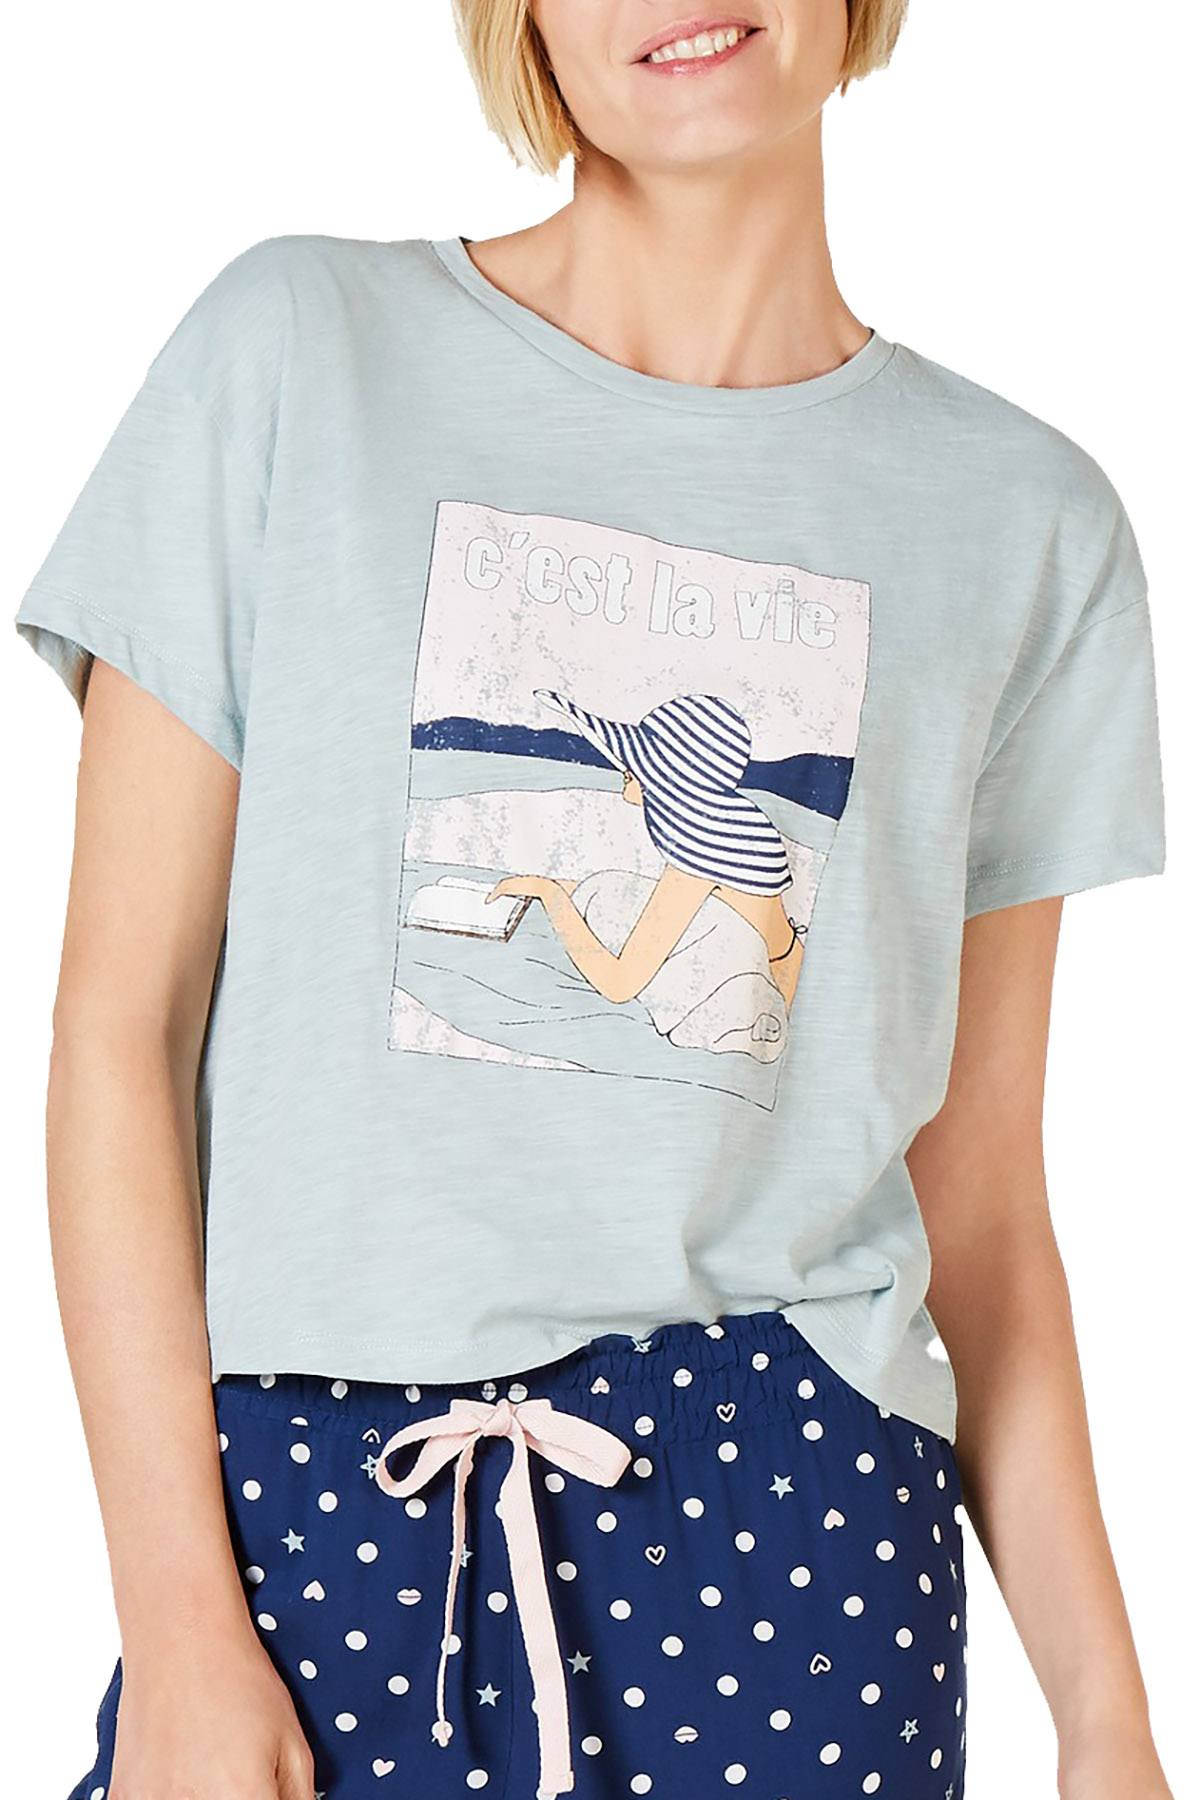 Jenni Graphic Print Crop Tee in Cest La Vie Seaglass